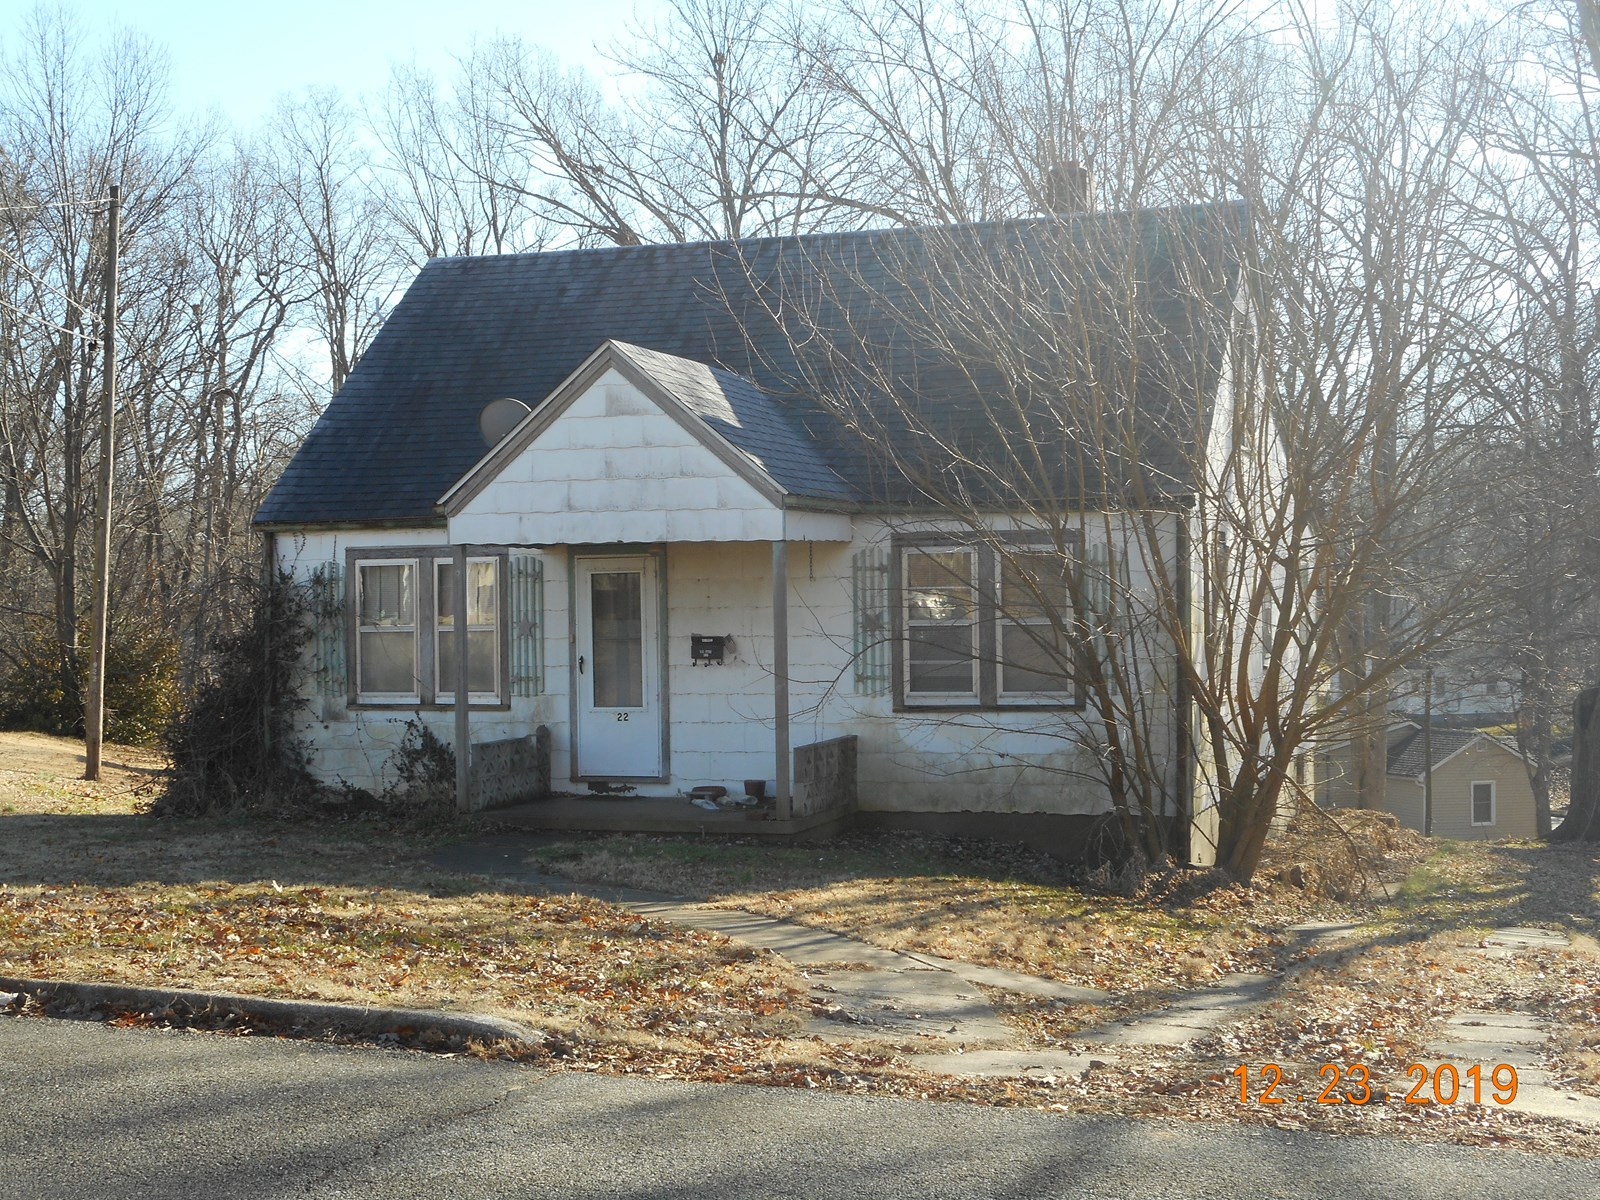 For Sale 3 For Bedroom 1 Bath House in Jackson MO.